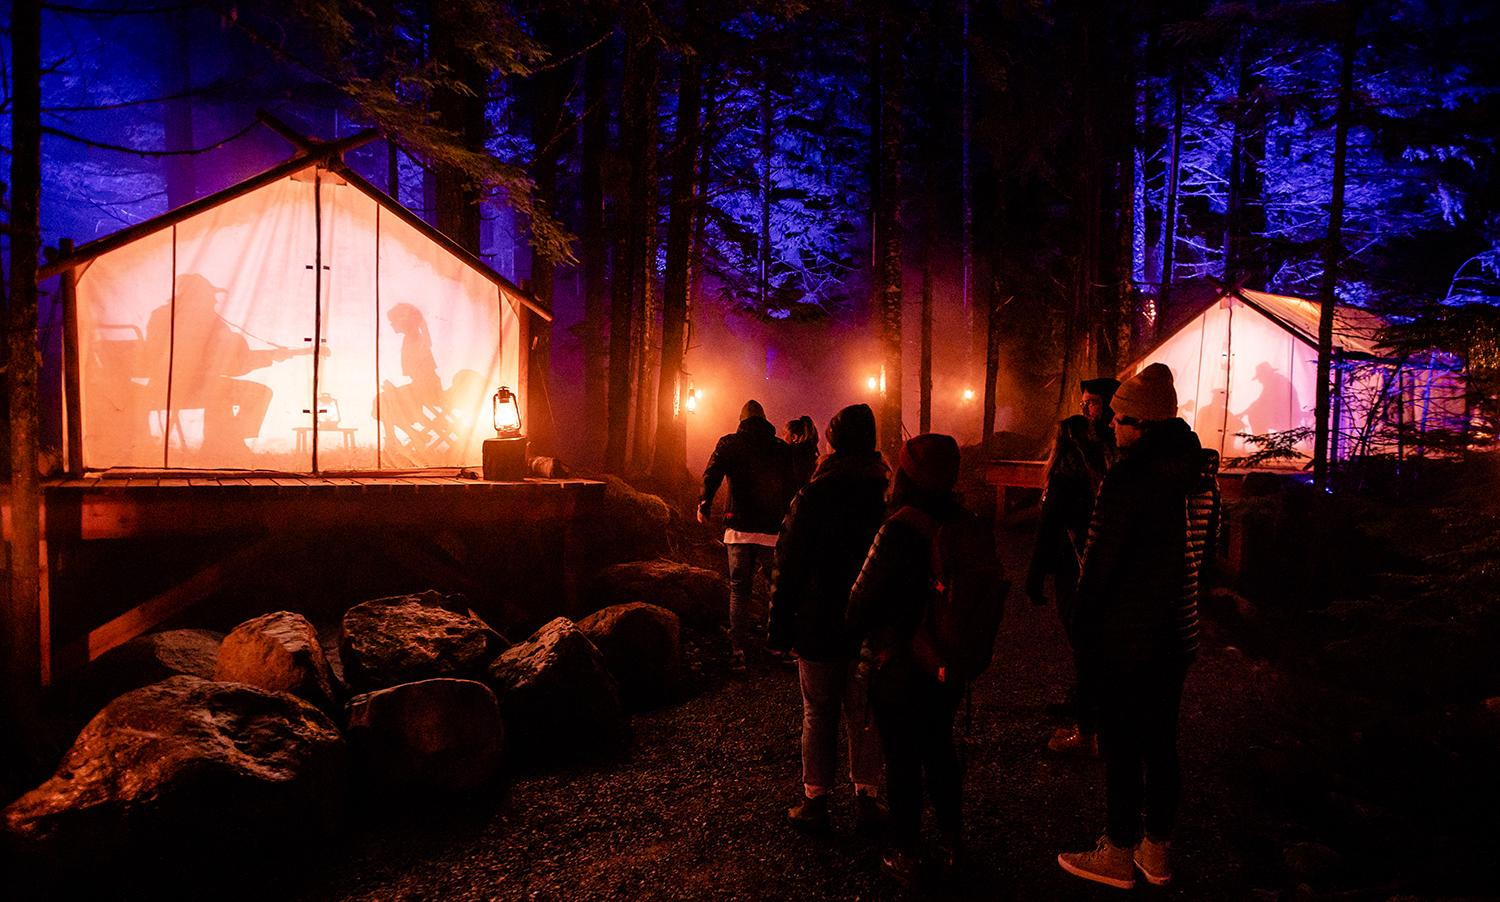 "Vallea Lumina is Whistler's newest winter Multimedia Light Walk. While its summer version is in its third year, the winter version just debuted and will be running through April 2020. The 1km walk through the woods is wondrous, and full of high tech light projections and an orchestral soundtrack that truly transports you. More info on times, and tickets{&nbsp;}<a  href=""https://vallealumina.com/"" target=""_blank"" title=""https://vallealumina.com/"">online</a>. (Image: Moment Factory)"